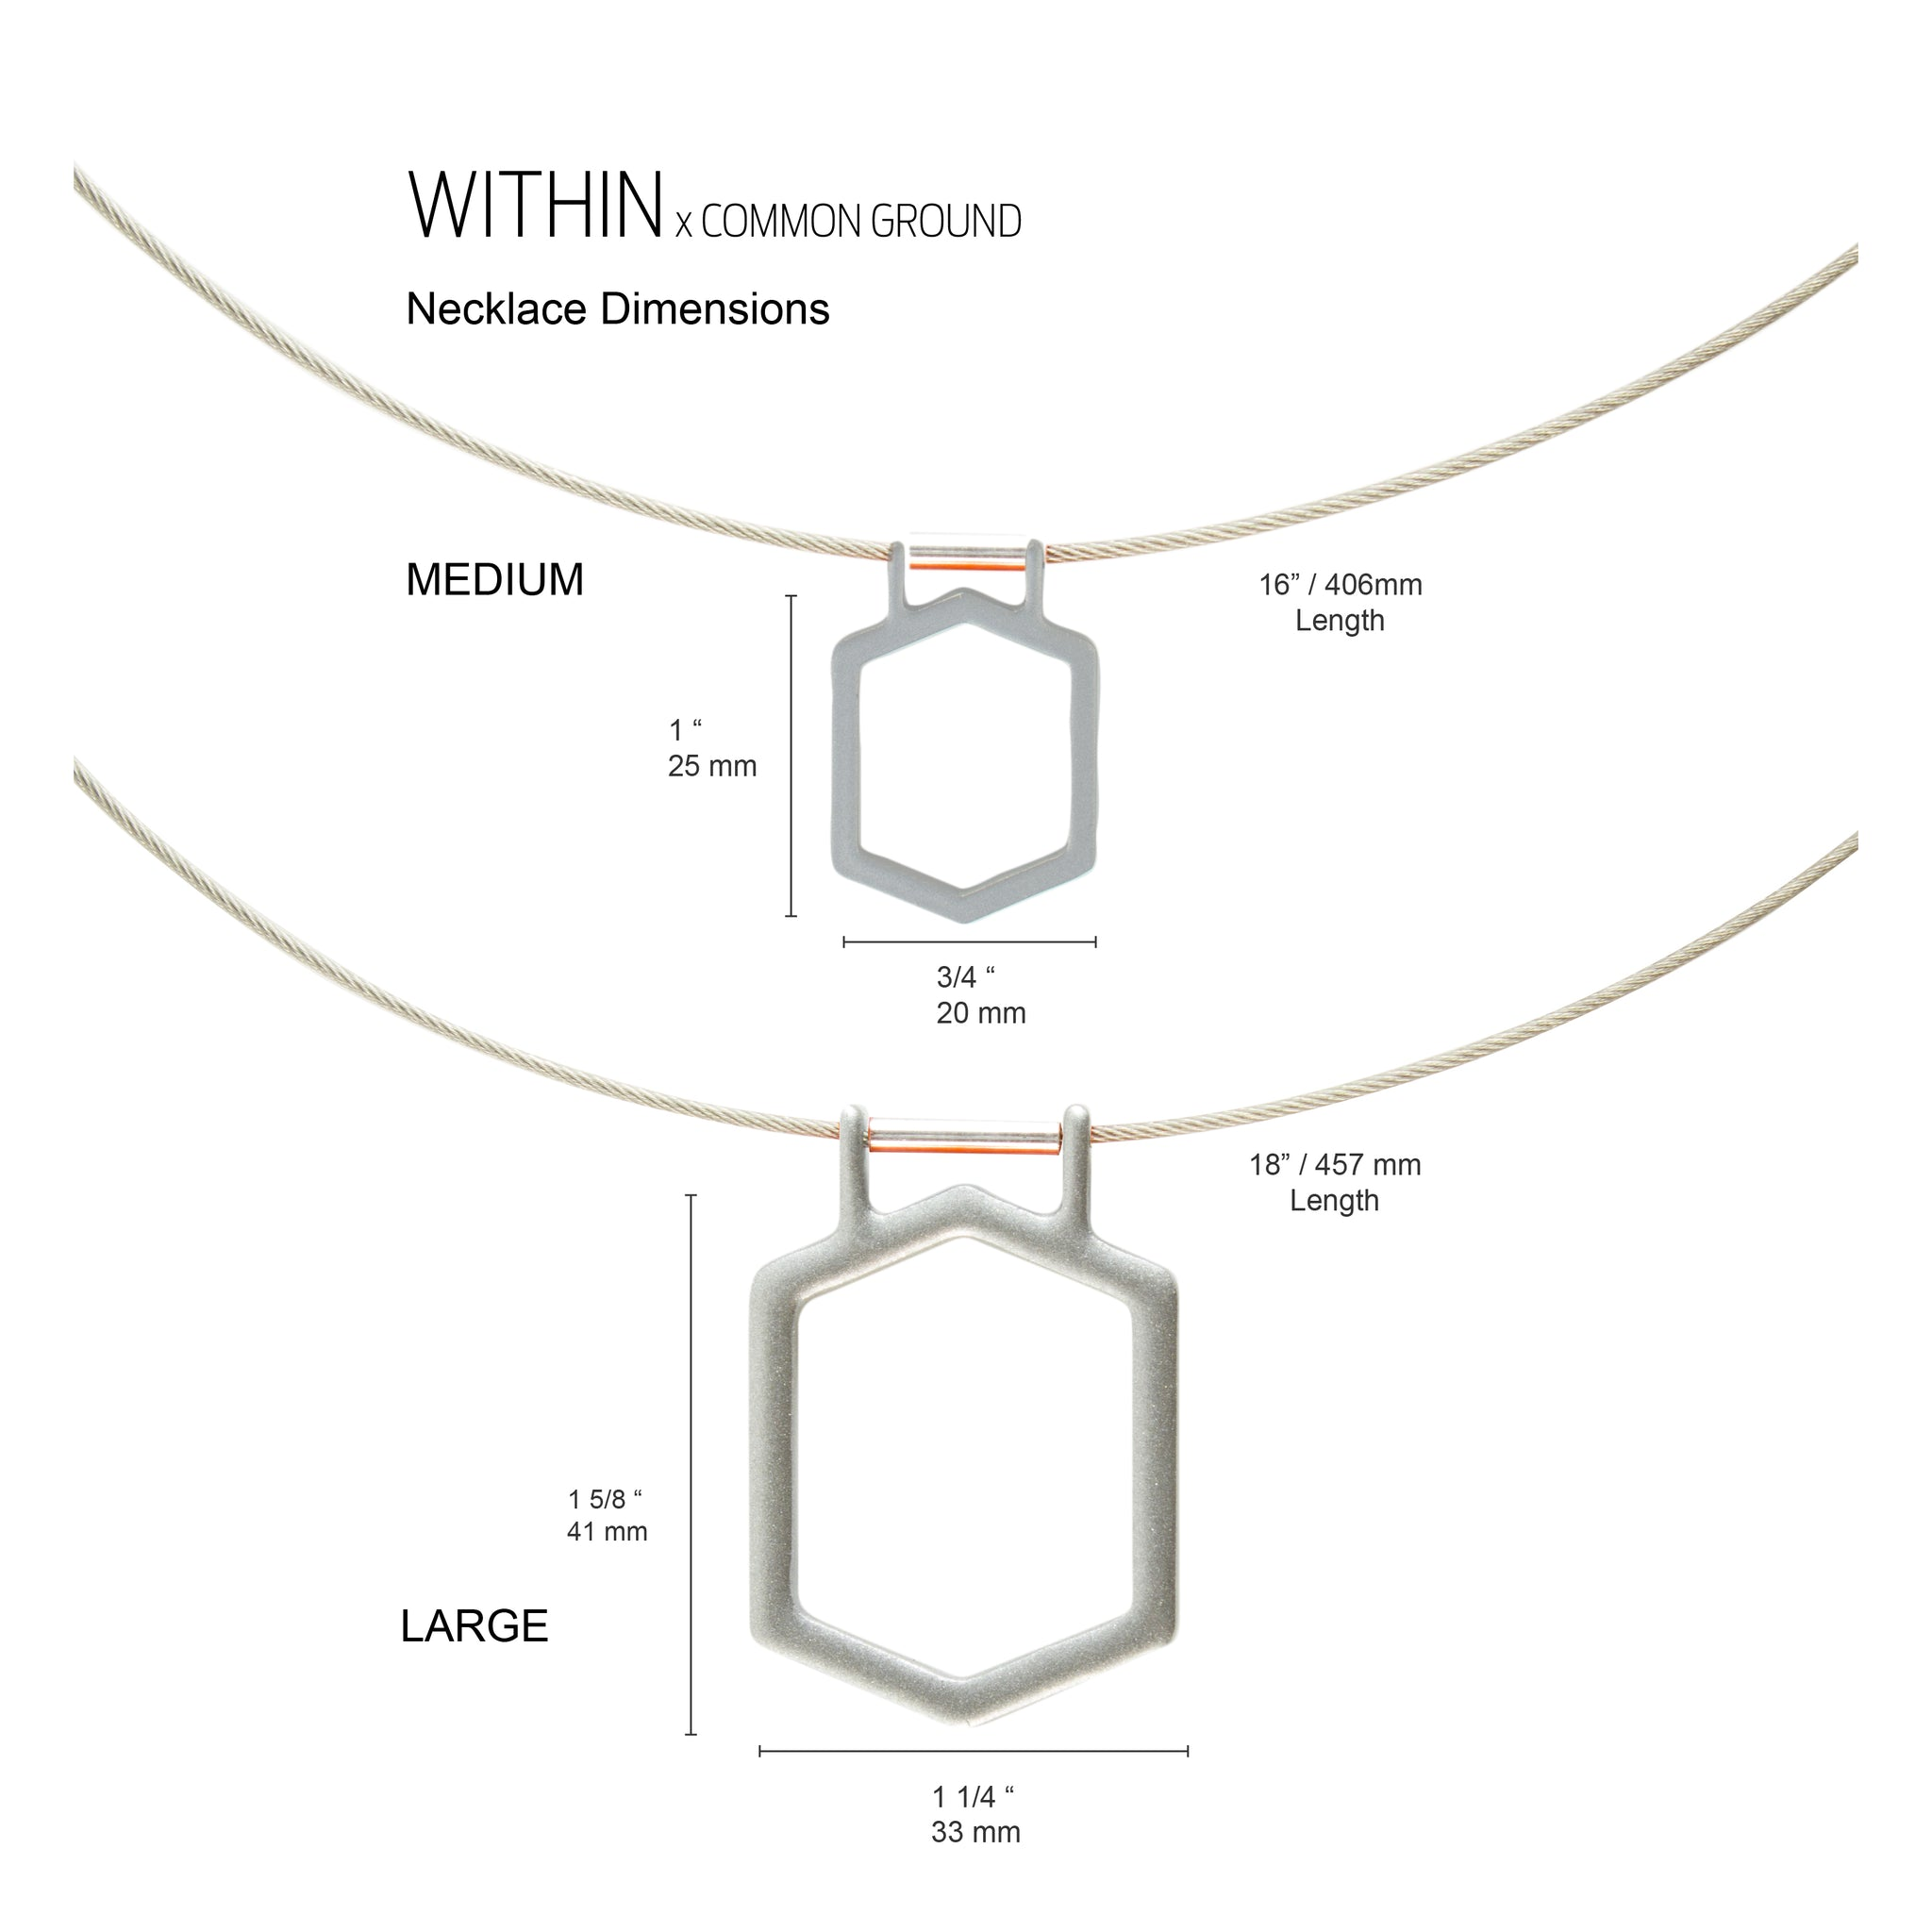 Quarry_Gray - WITHIN x COMMON GROUND Necklace Dim View